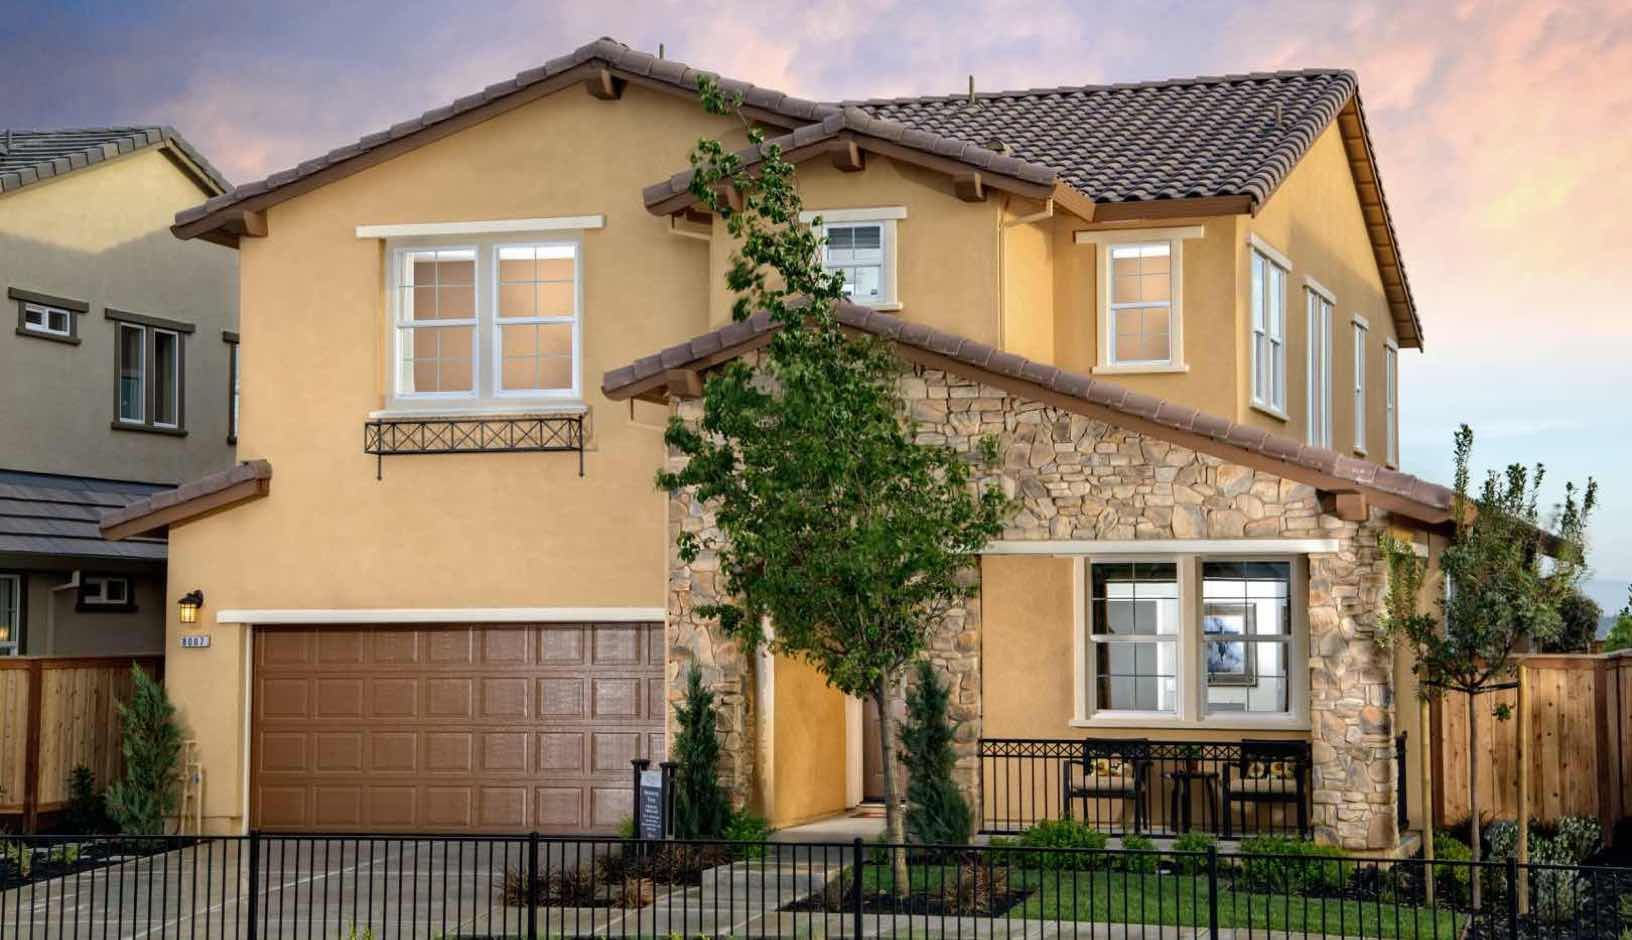 Single Family for Sale at Redstone - Residence 3 8019 Claret Court Vacaville, California 95687 United States